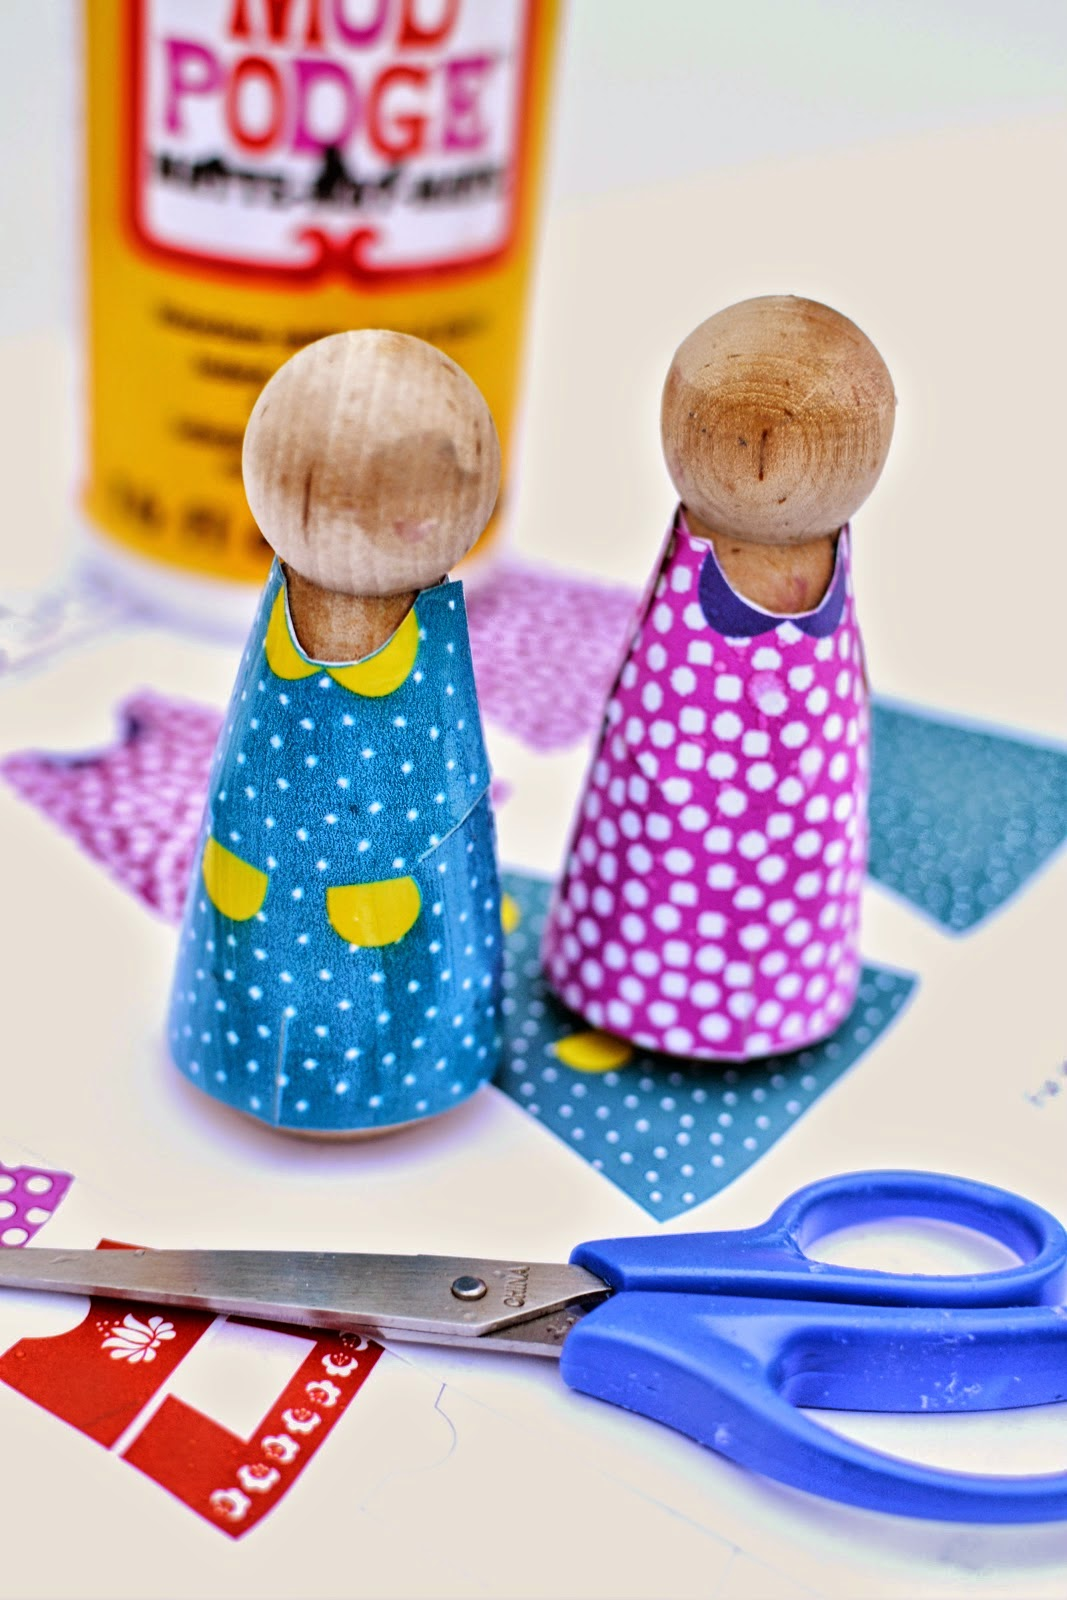 http://plentyofpaprika.blogspot.com/2014/11/printable-peg-doll-clothes-for-girl.html